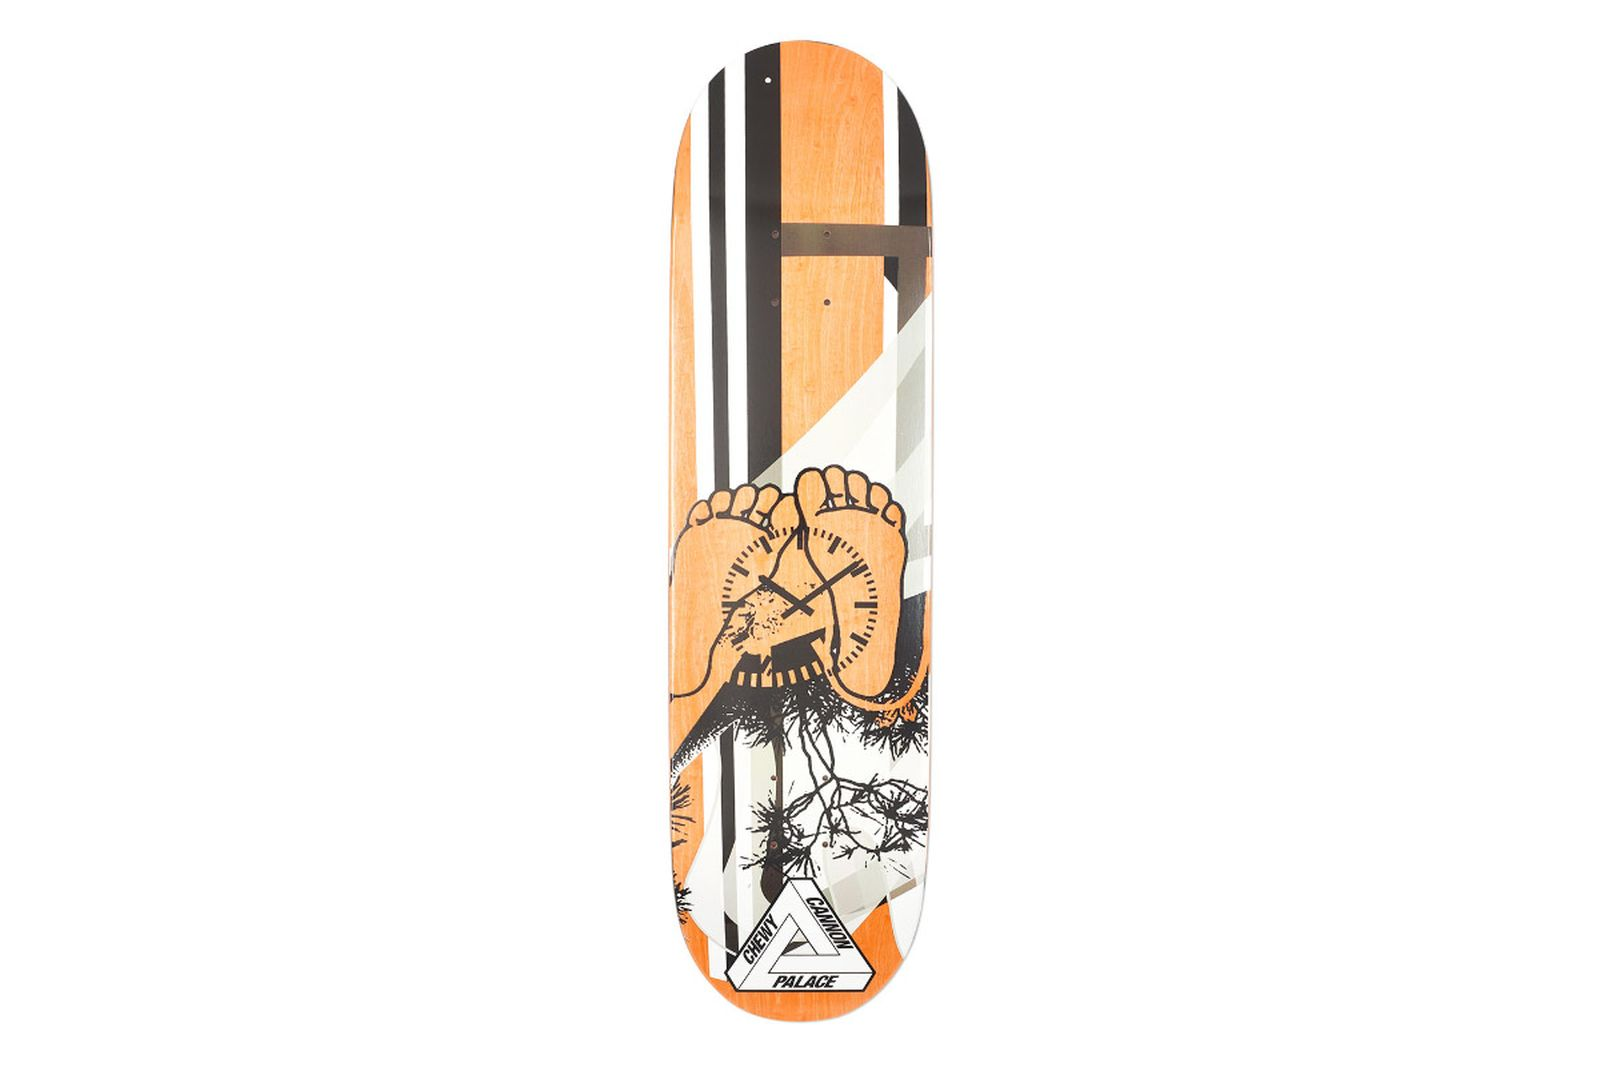 Palace 2019 Autumn Boards Chewy top